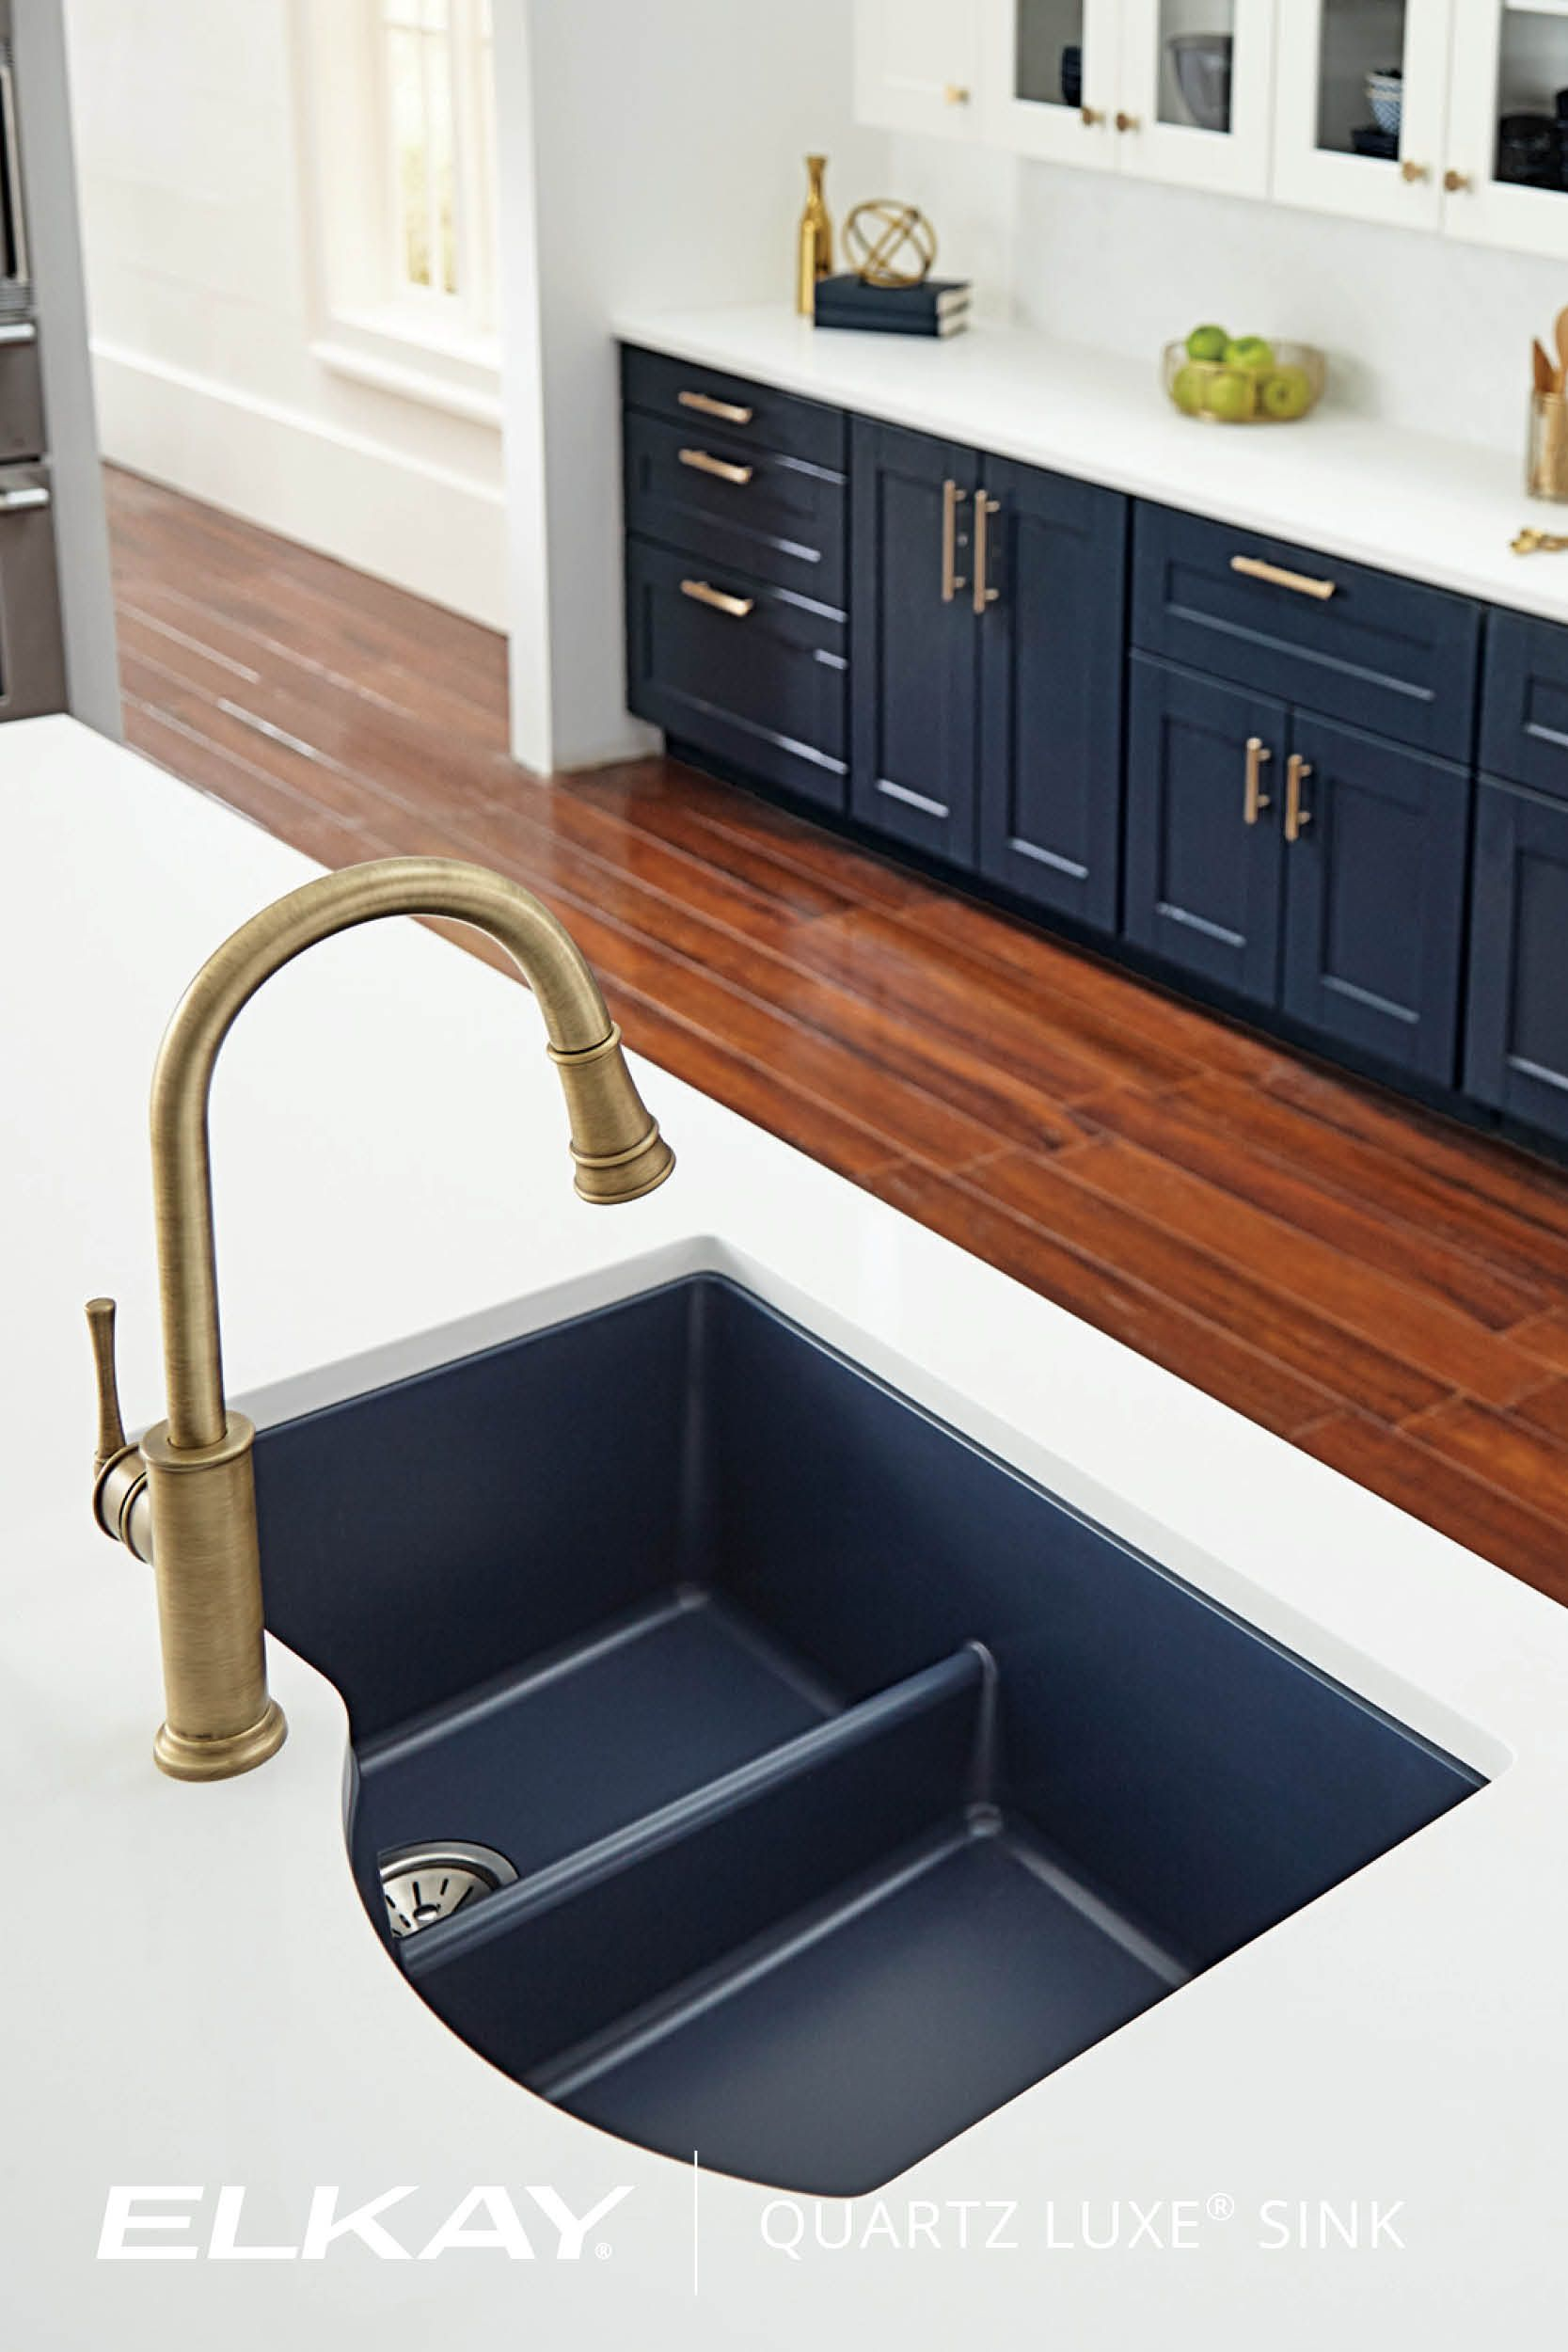 The Elkay Quartz Luxe kitchen sink in Jubilee adds statement ...